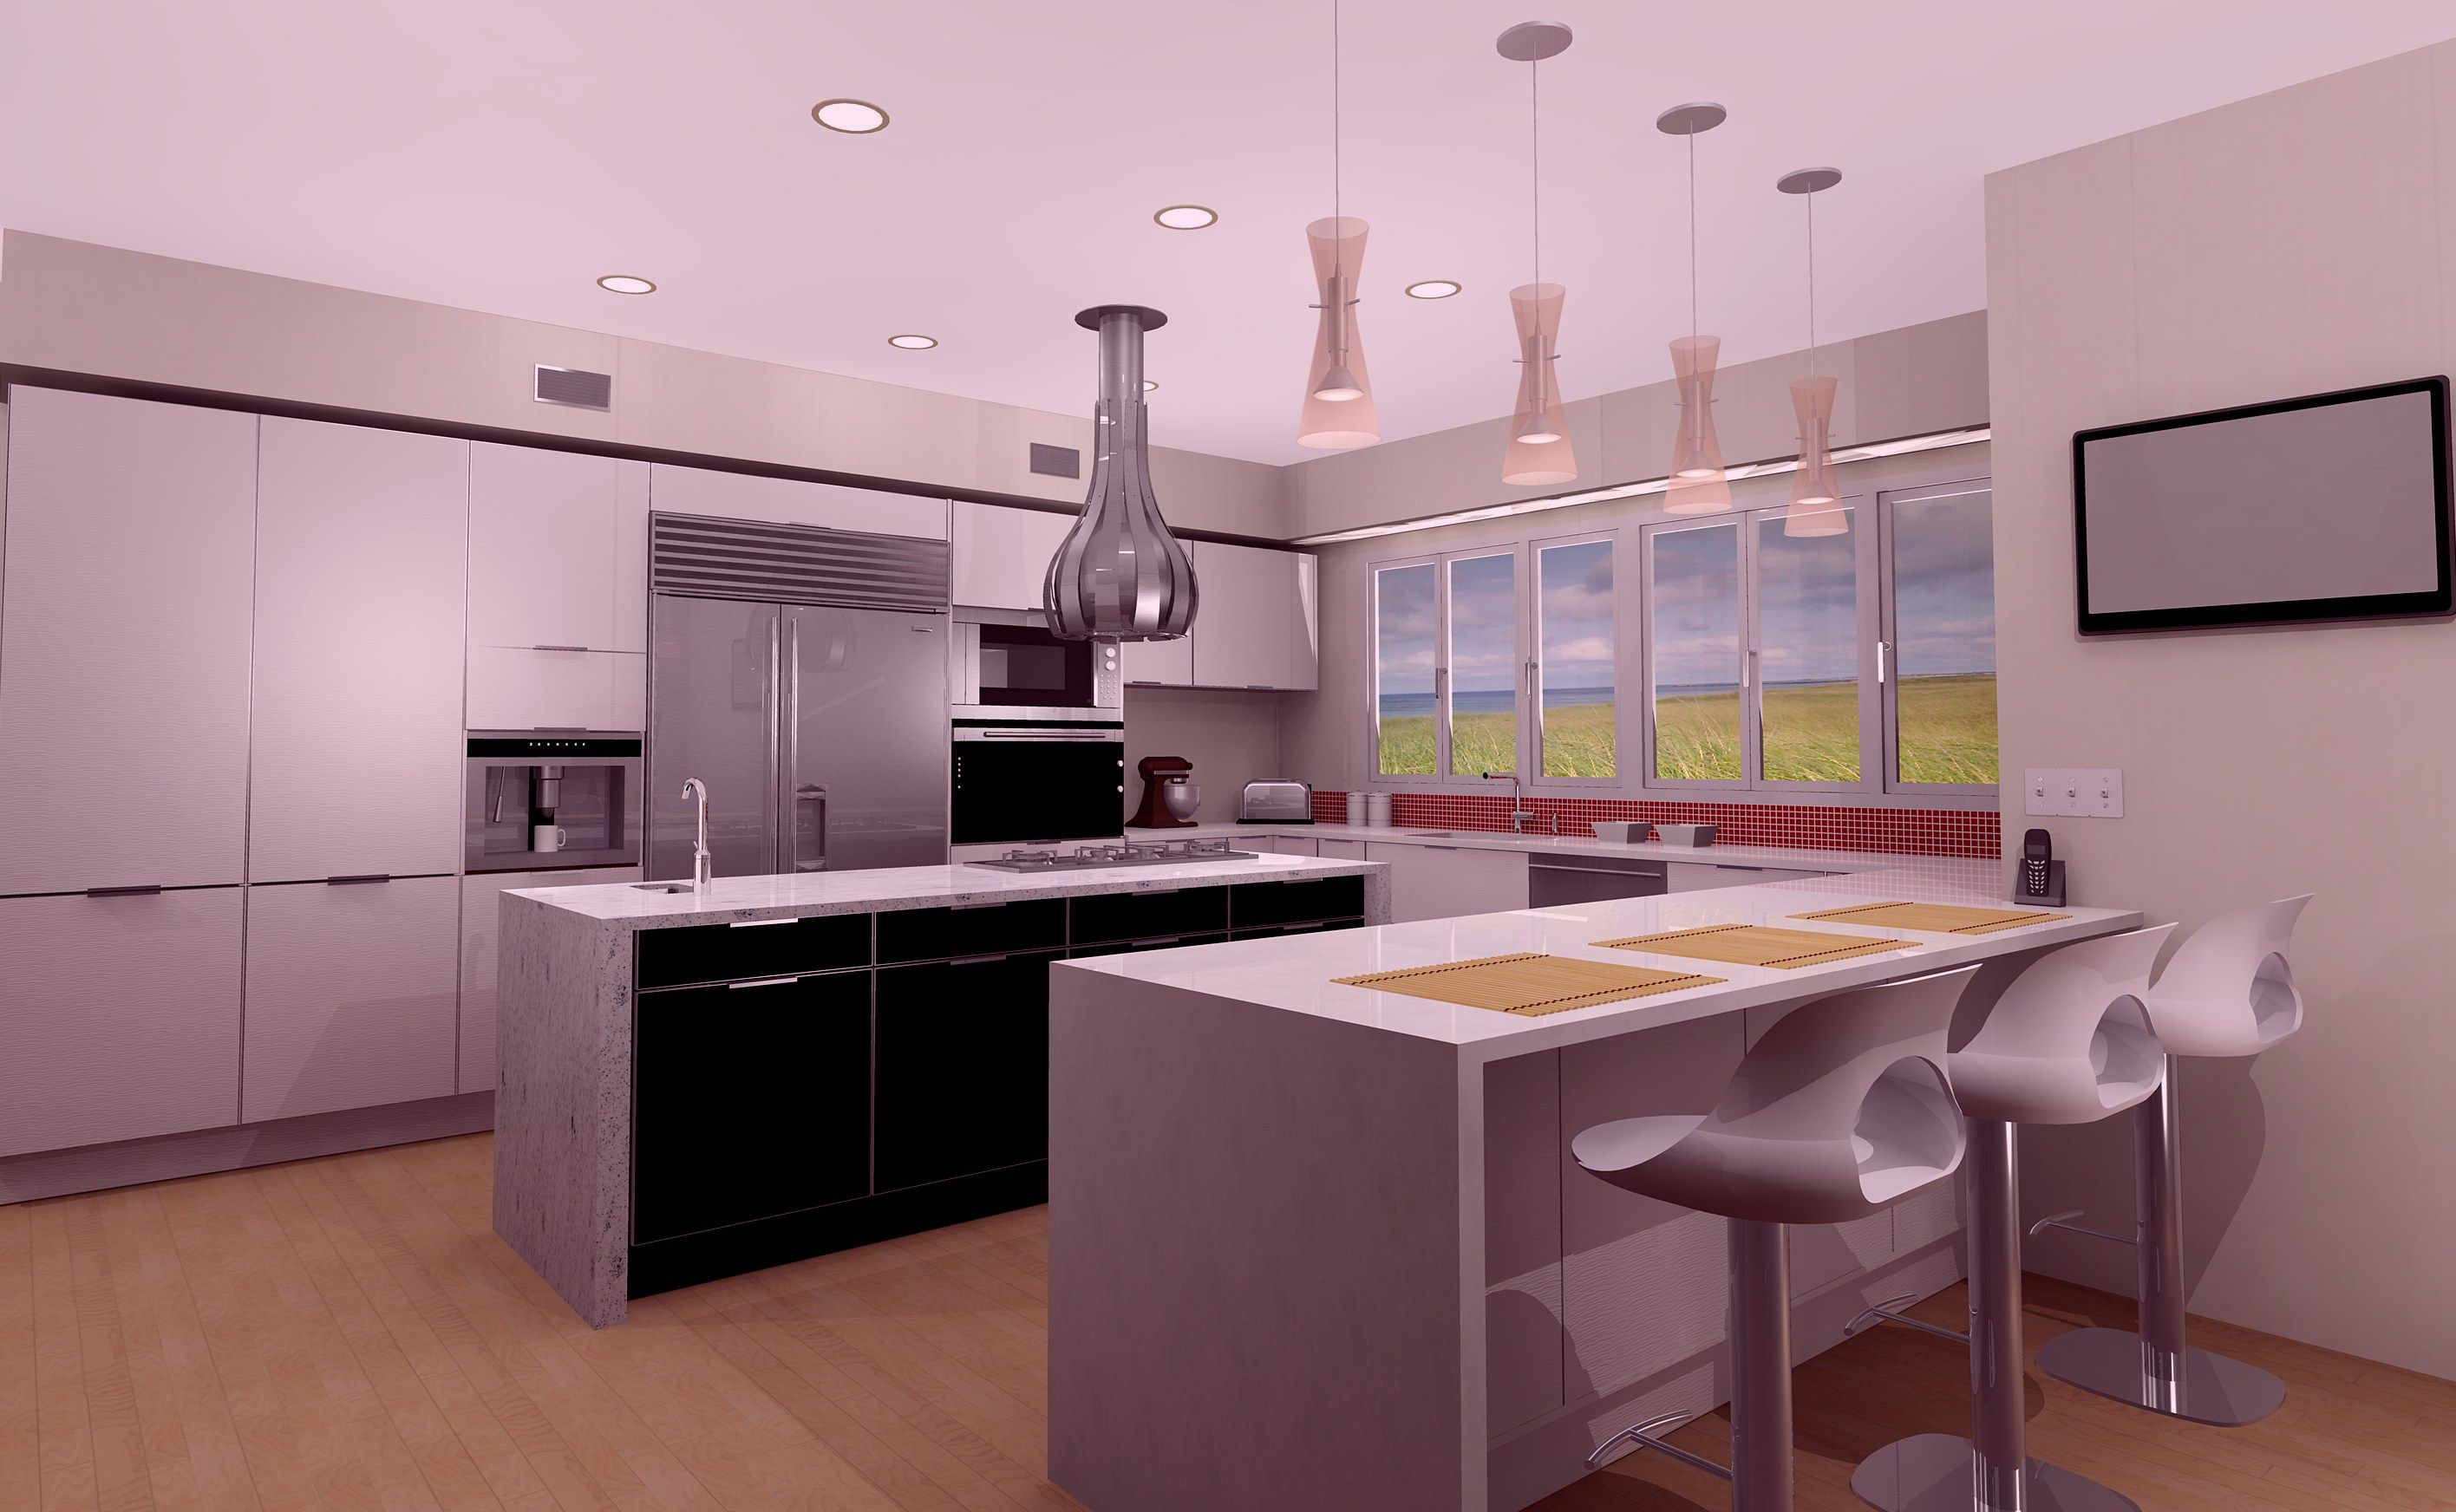 Kitchen Design Software B Andq Exterior Home Design Kitchen Remodel Design Software